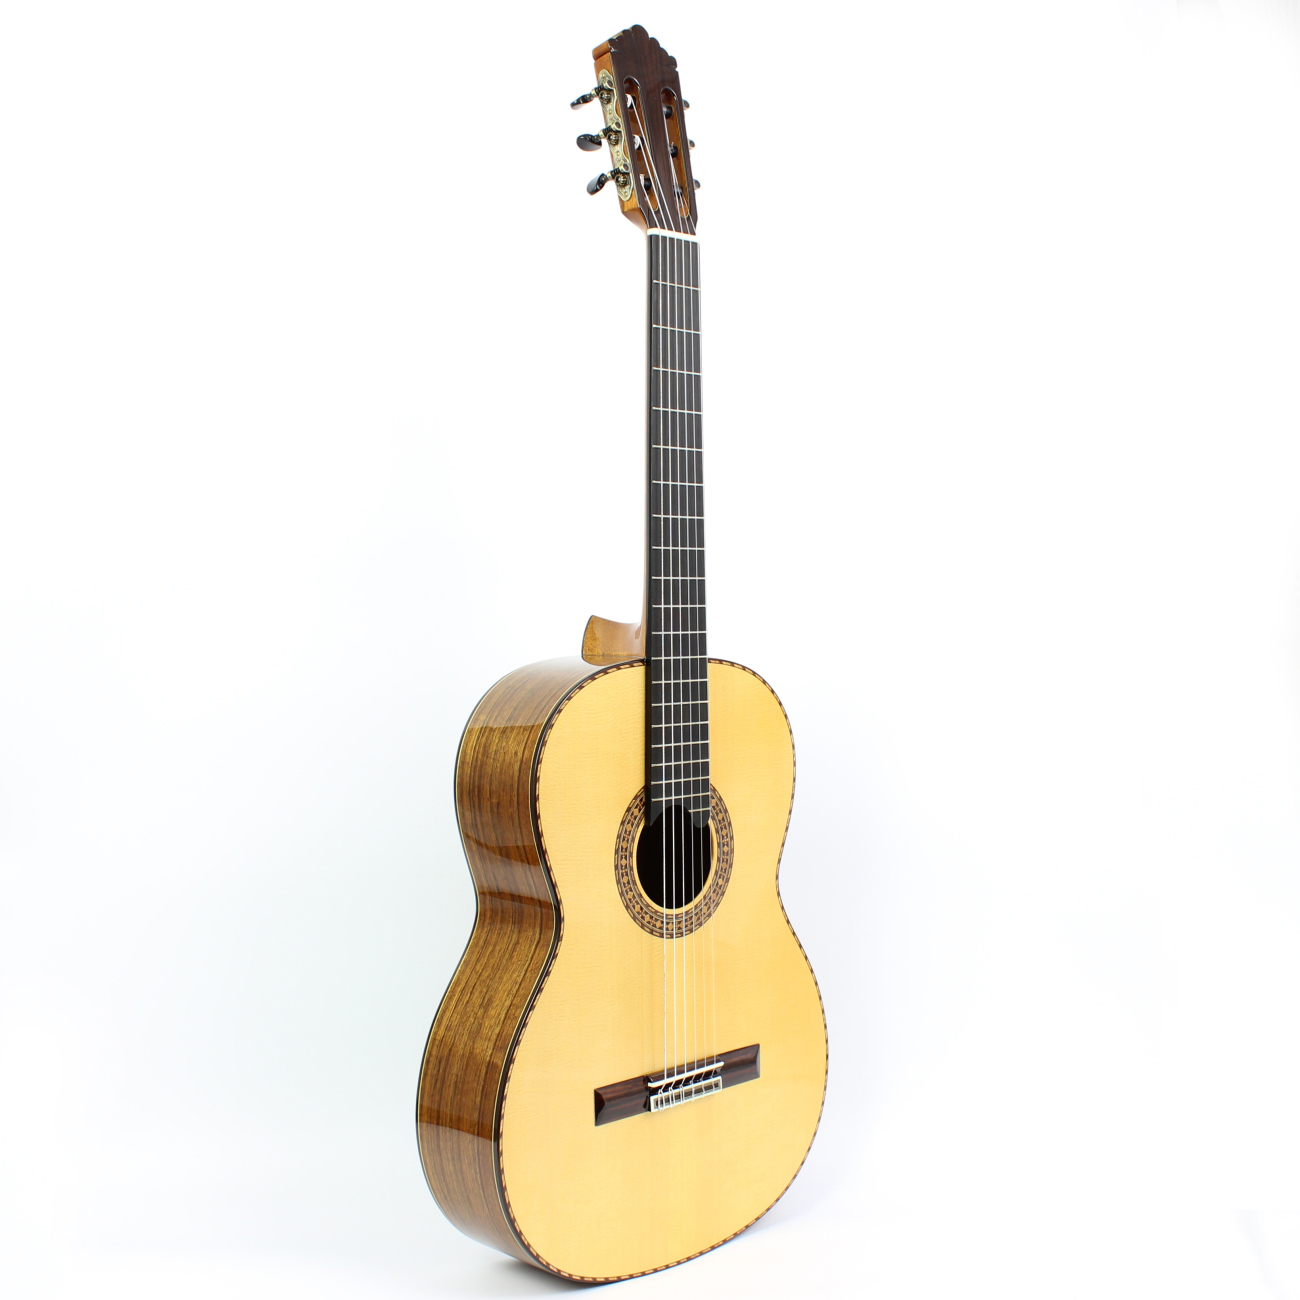 [Flagship store] santos song toos songtoos s065 bai-song all solid wood veneer of classical guitar